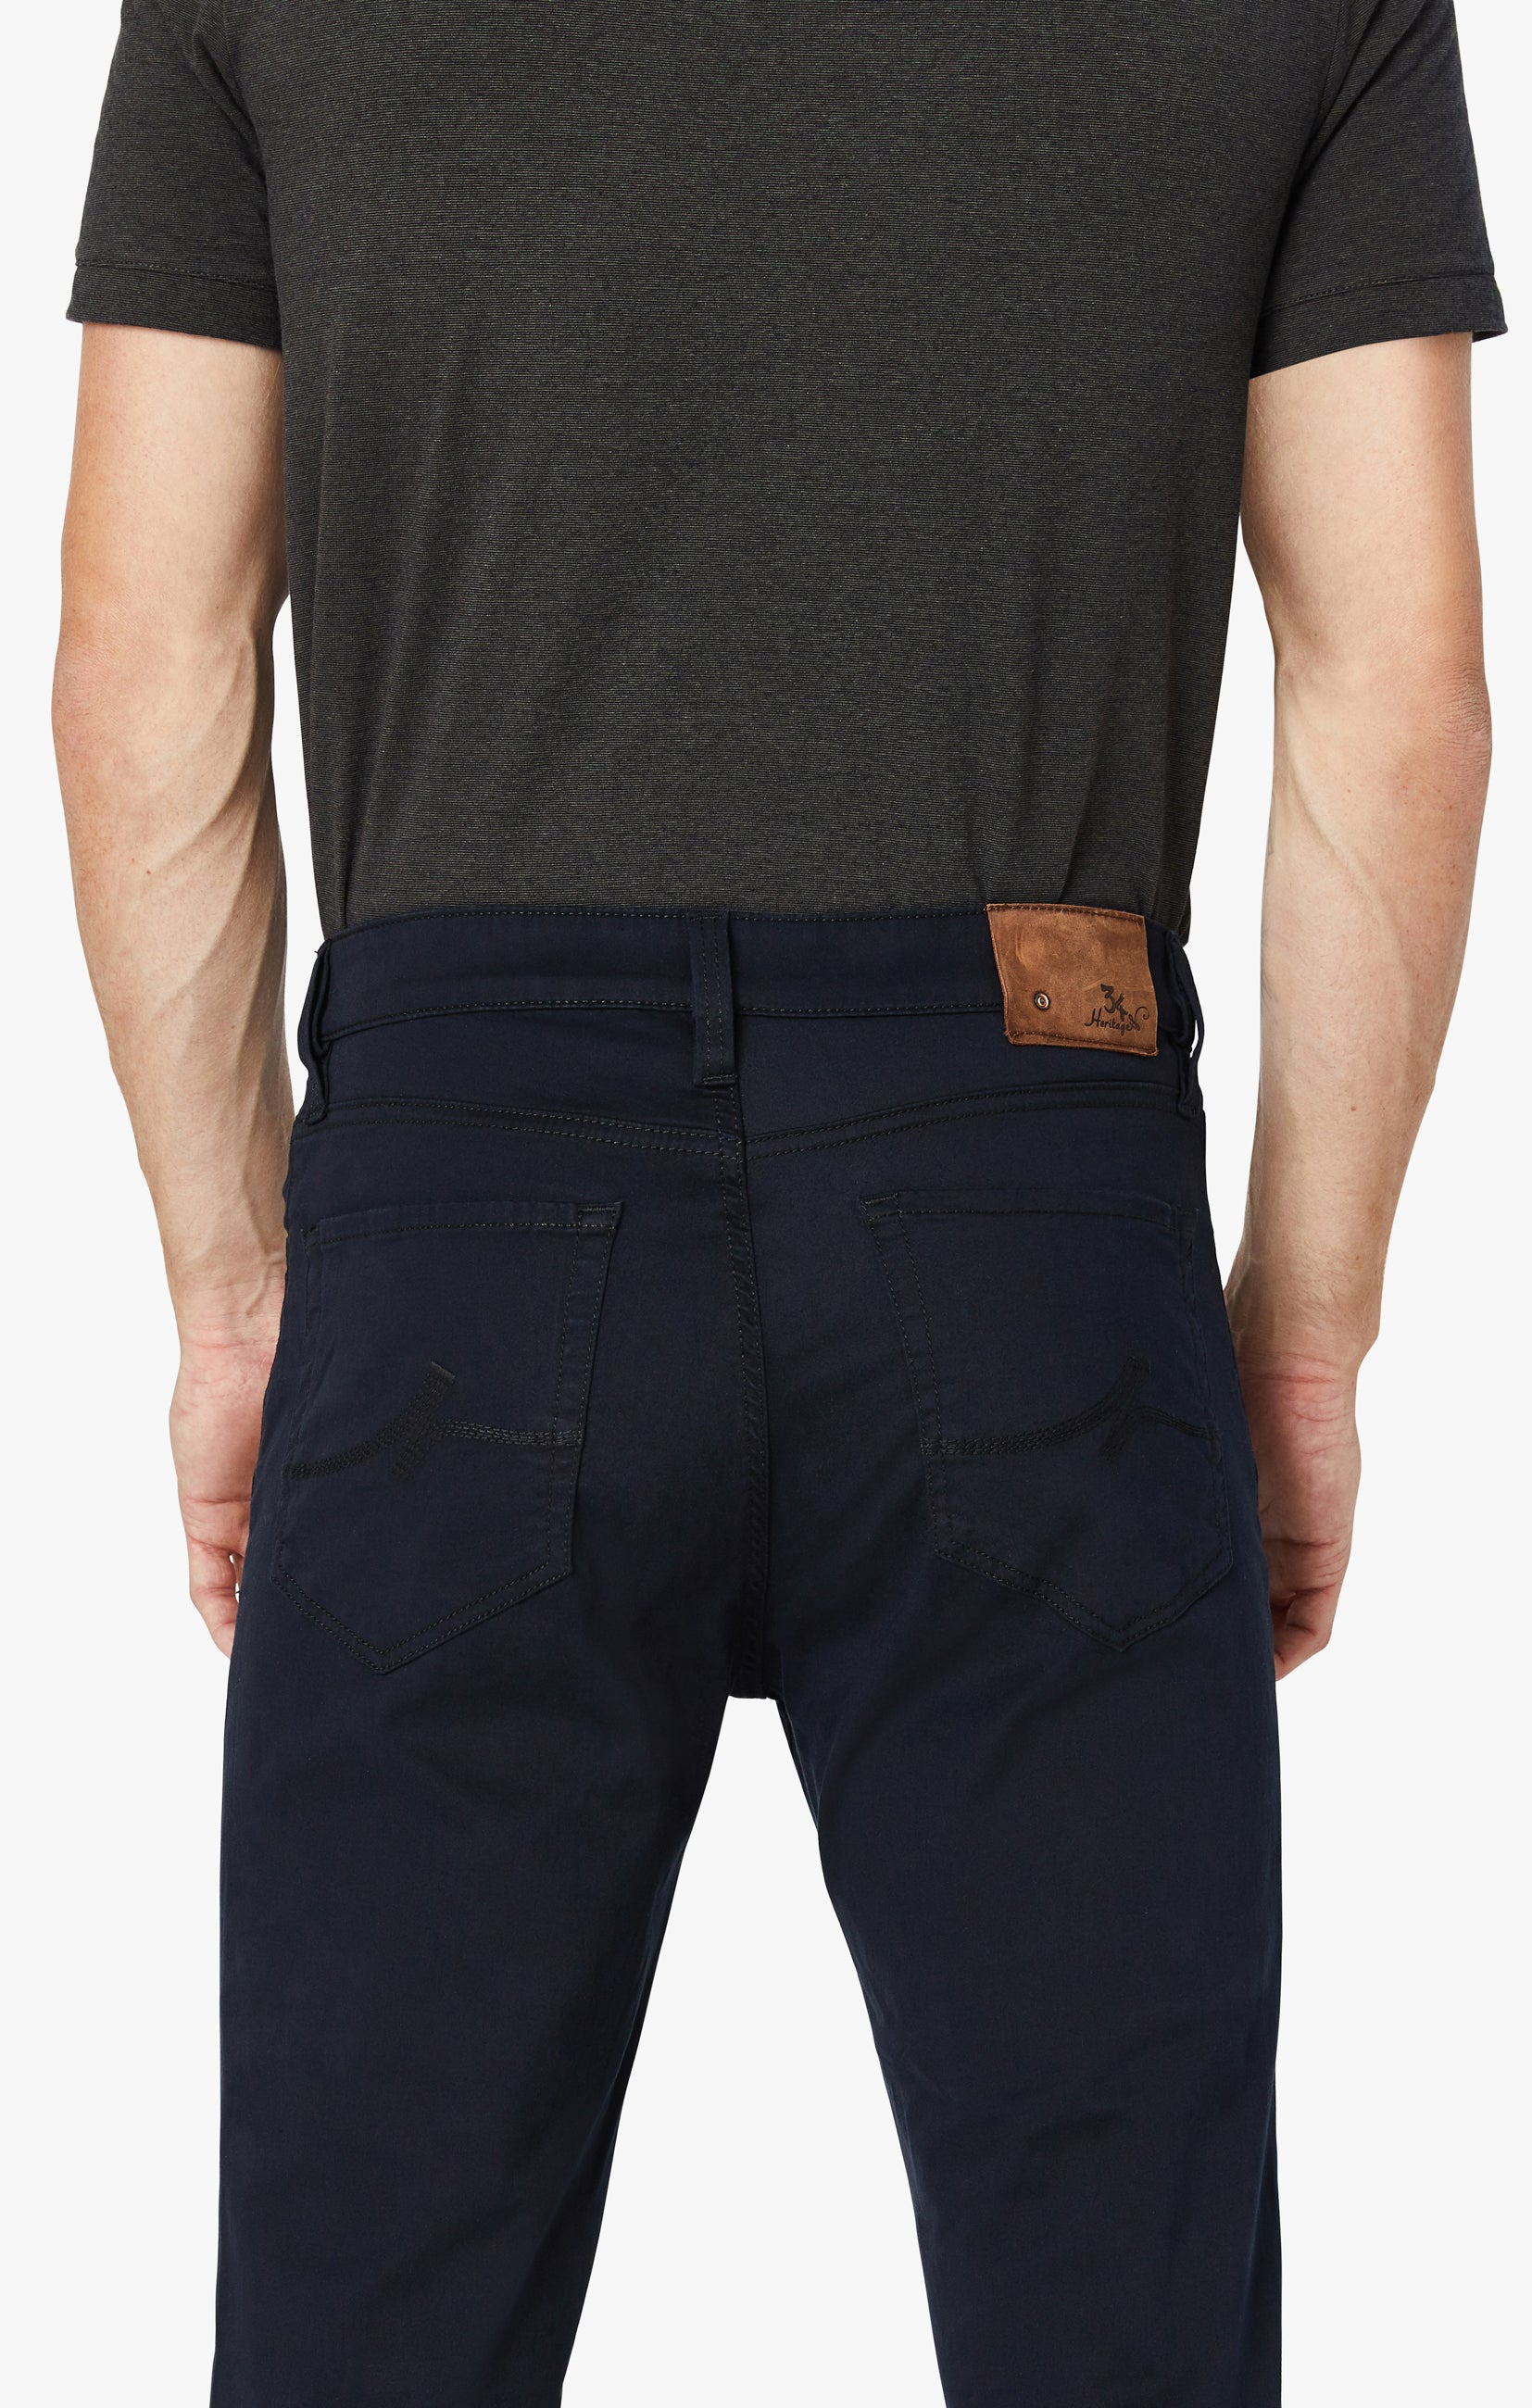 Charisma Relaxed Straight Pants in Navy Twill Image 4